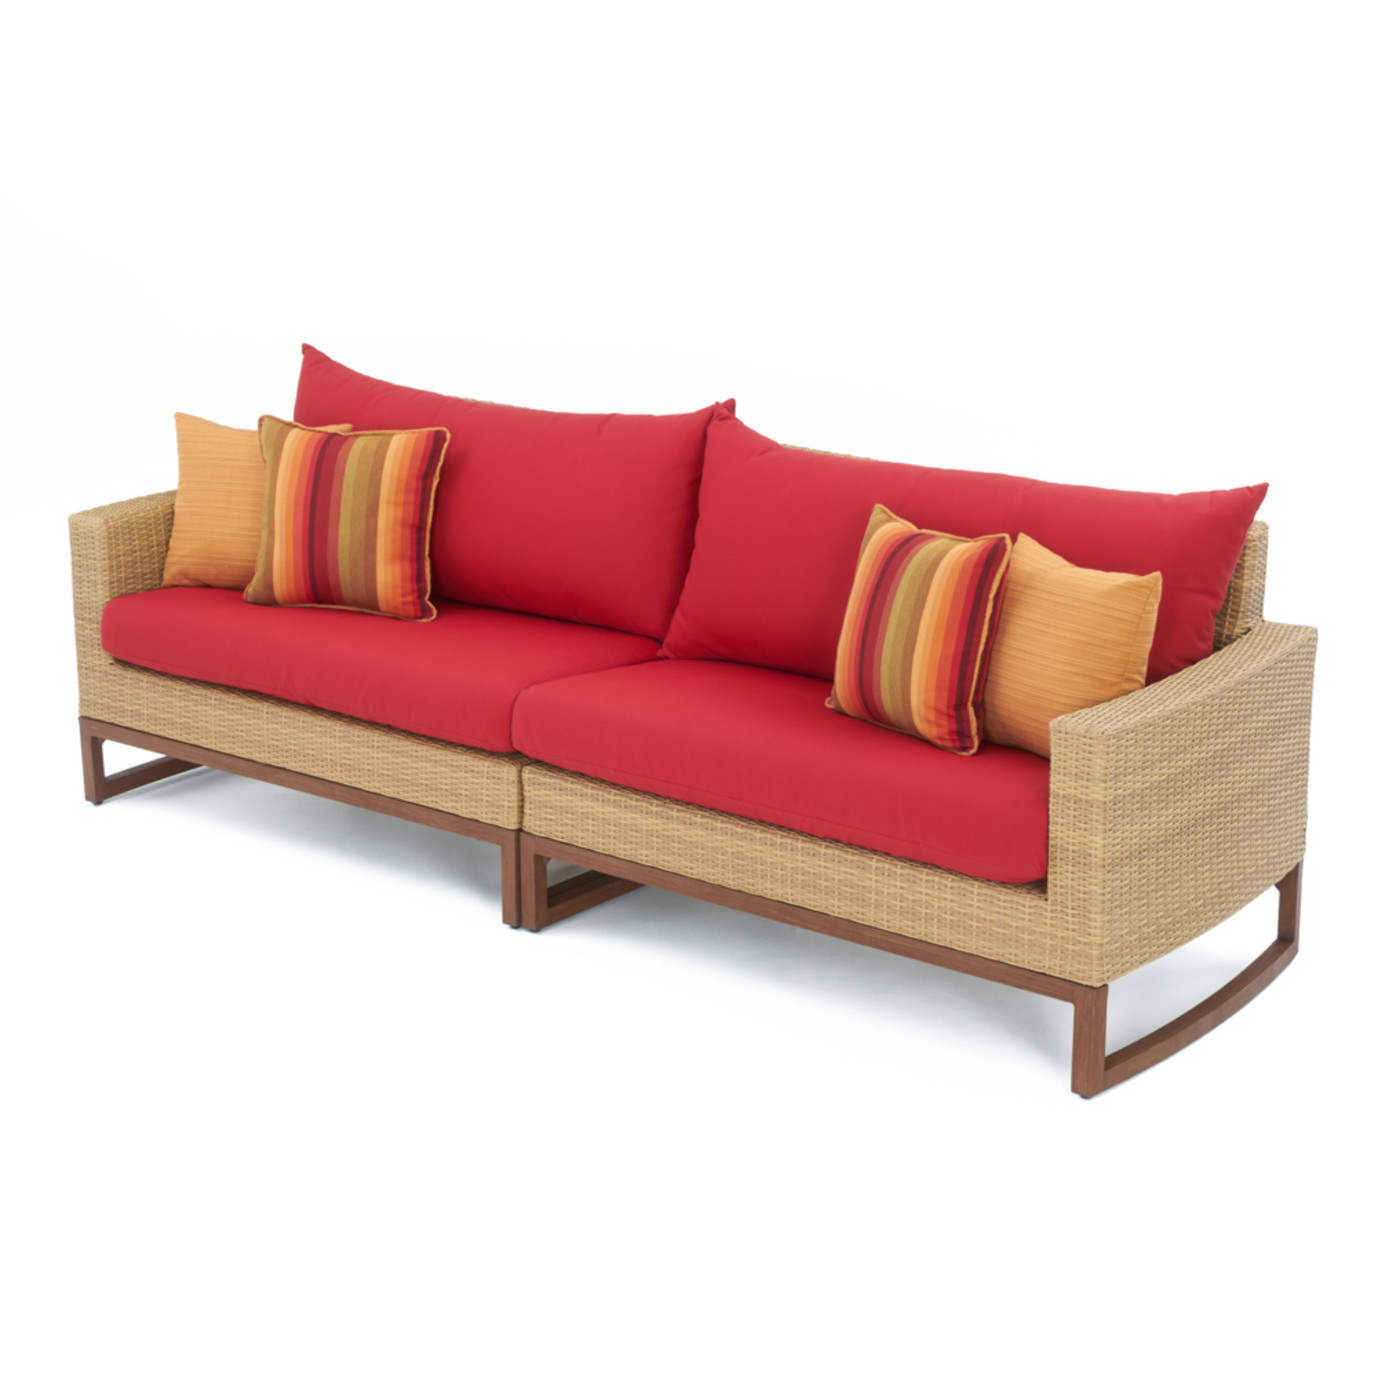 Mili™ 4pc Seating Set - Sunset Red